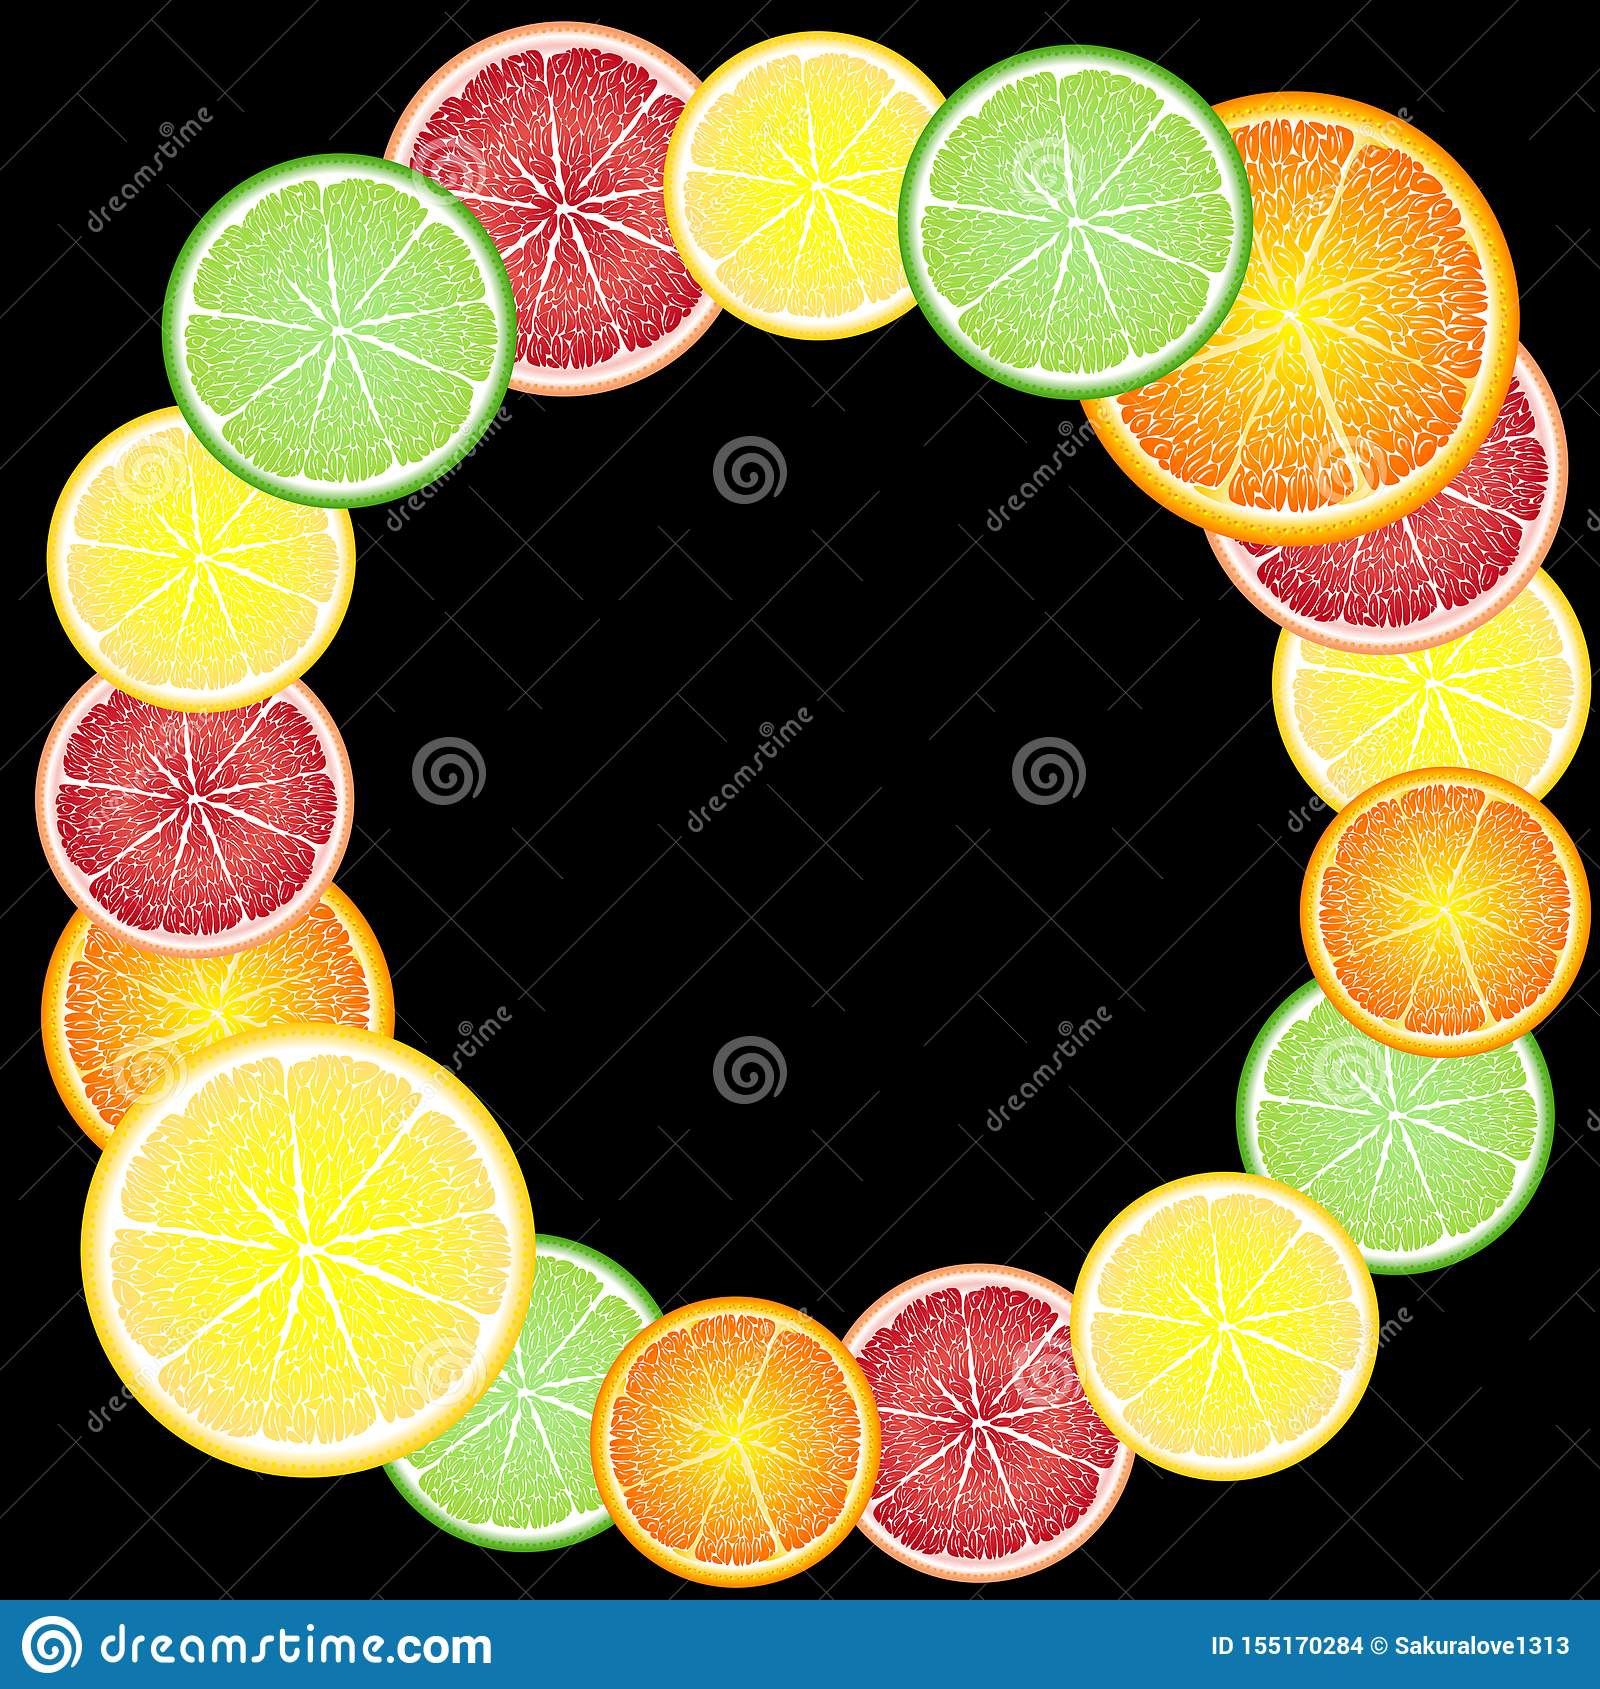 Cheerful, bright frame of circles of citrus fruits: orange, lemon, grapefruit, lime. Greeting card